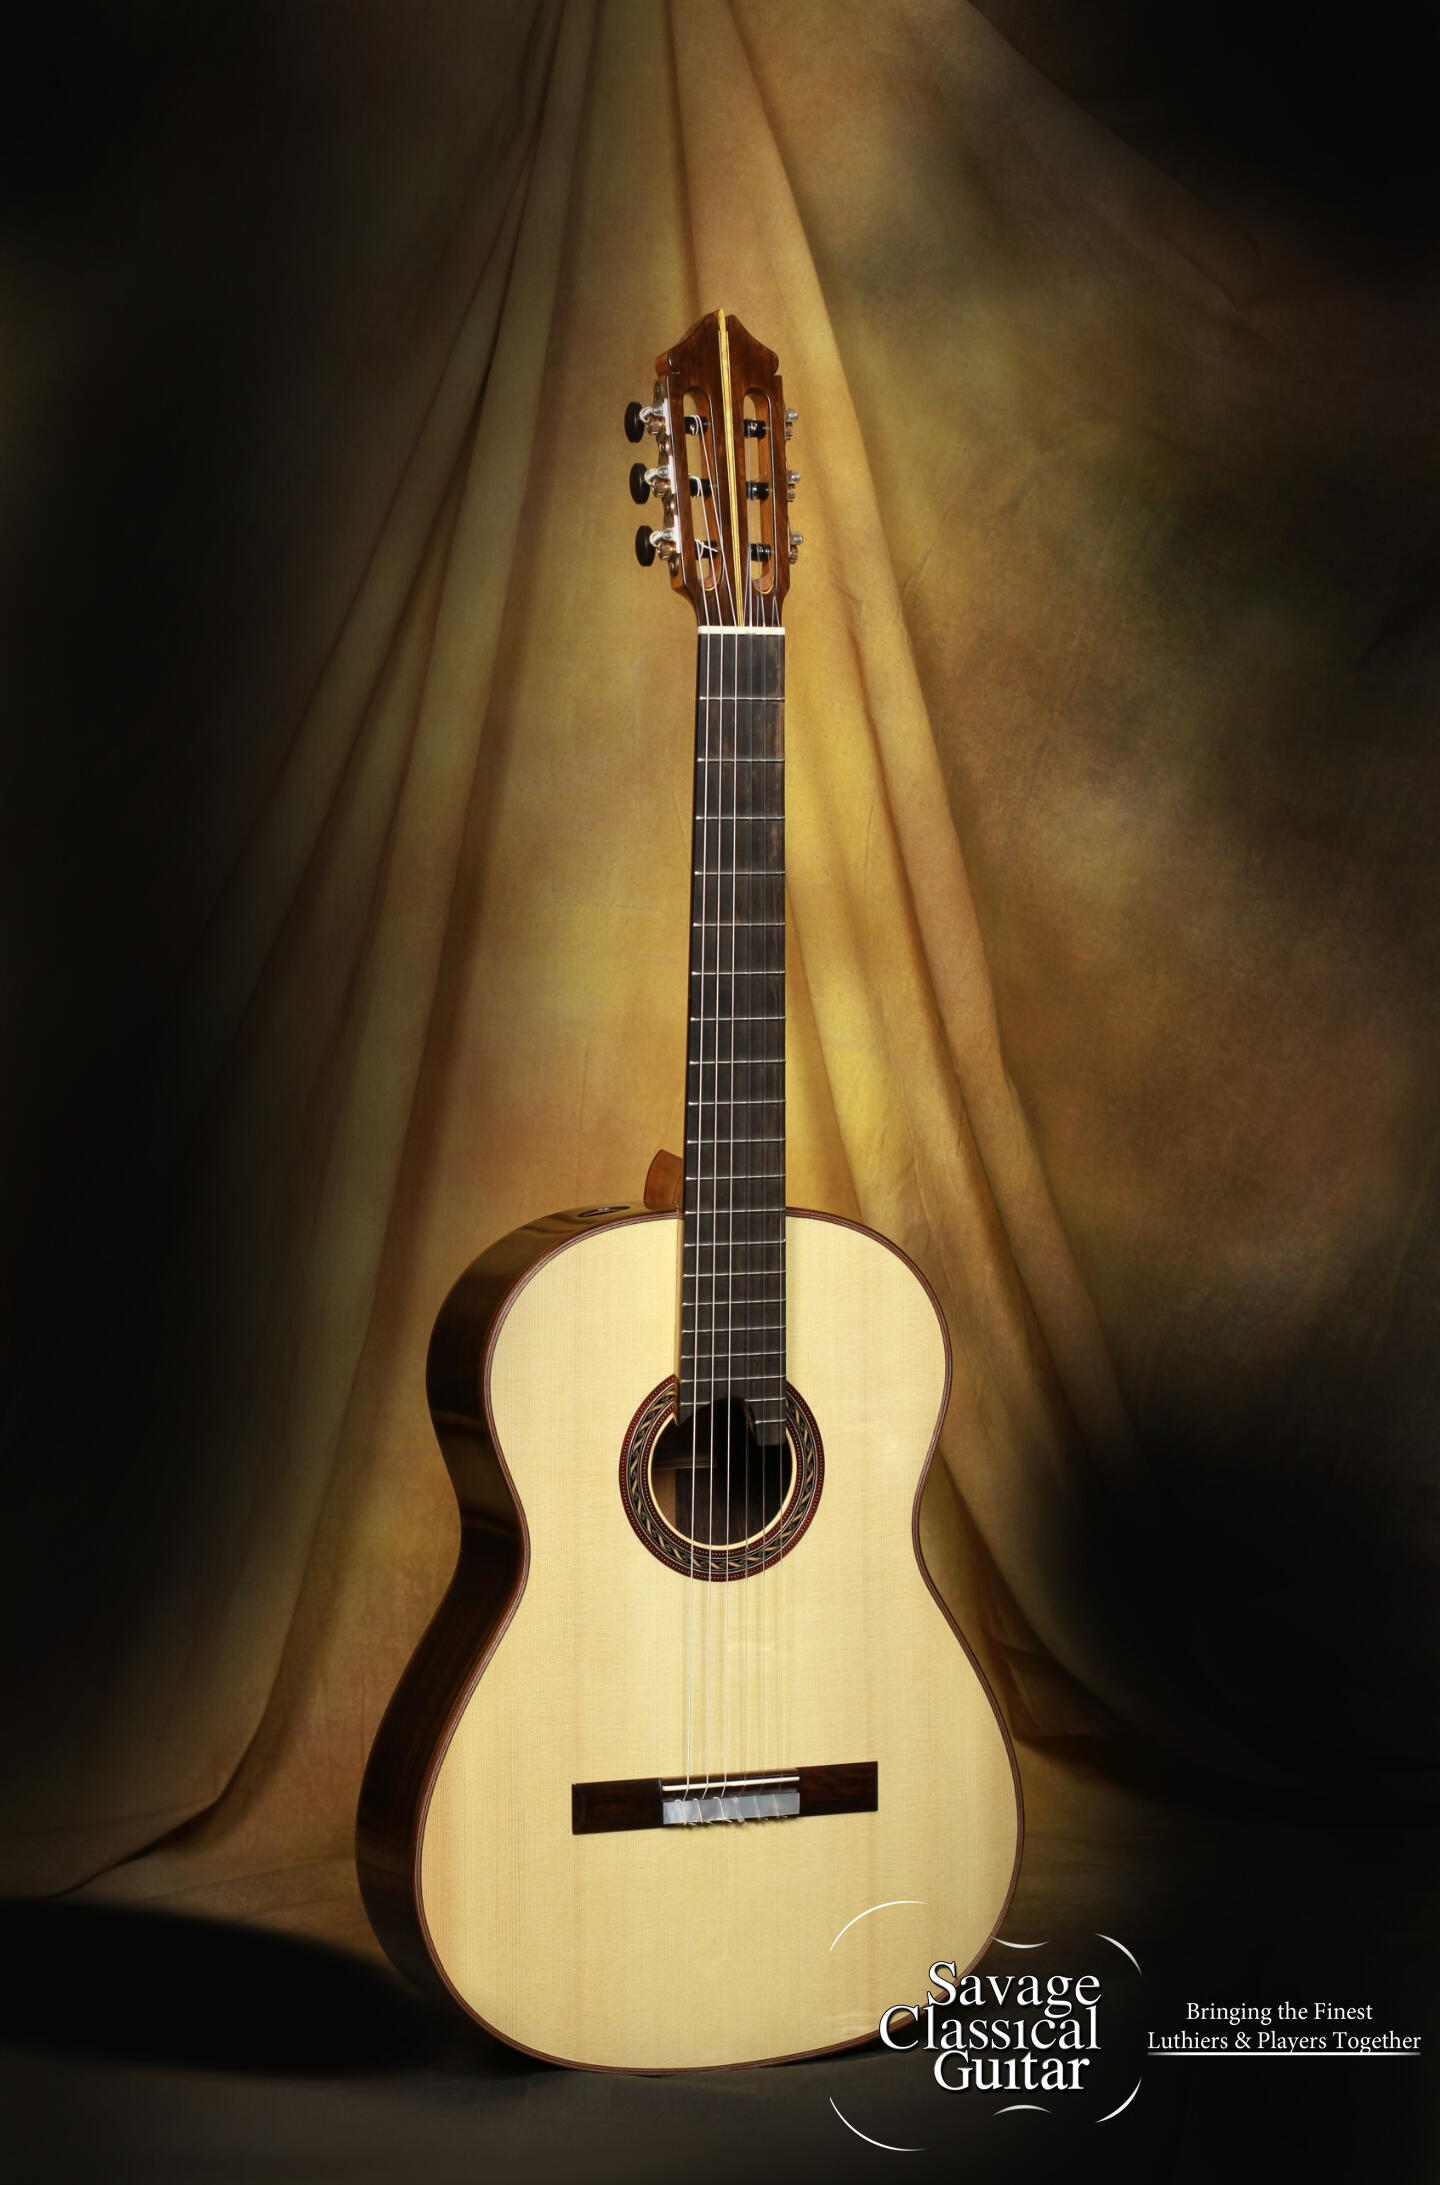 Kenny Hill Signature Classical Guitar For Sale By Savage